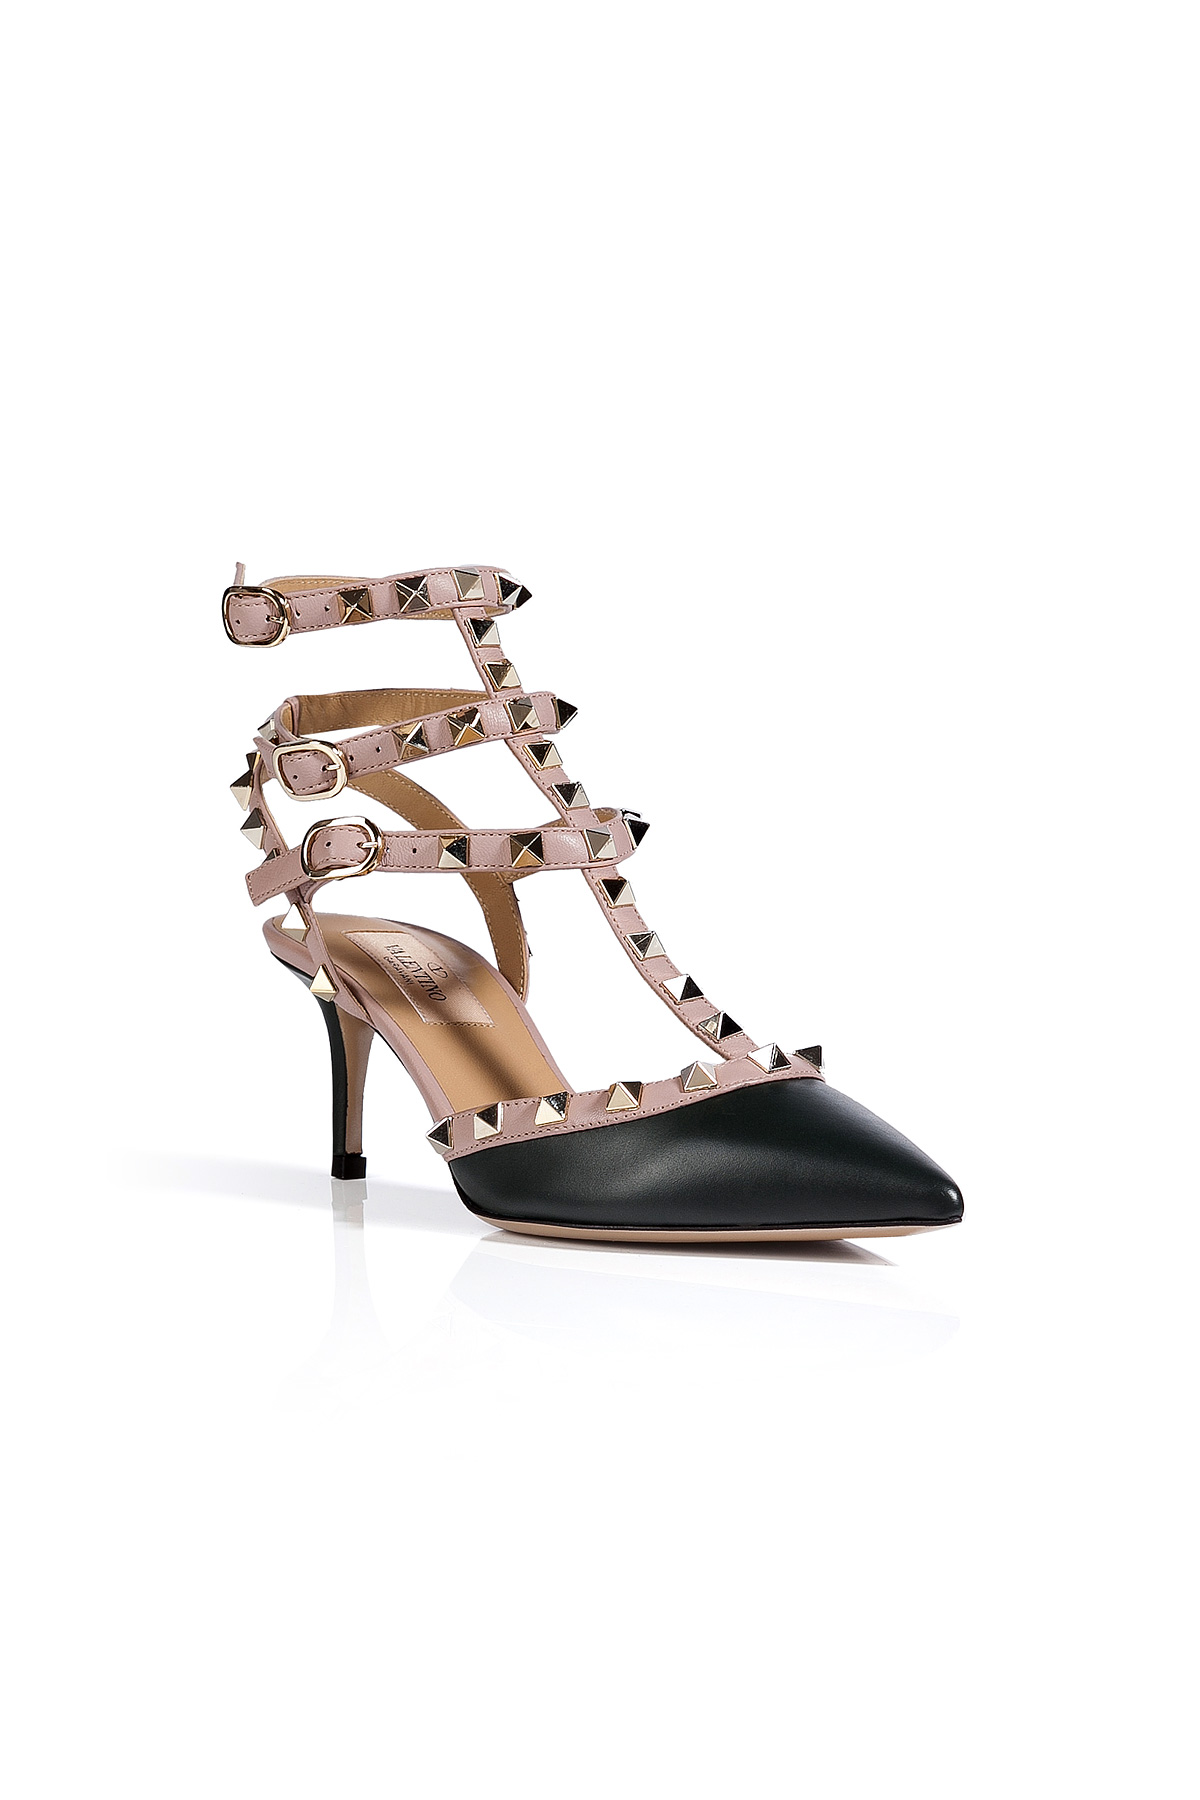 valentino leather rockstud kitten heels in black lyst. Black Bedroom Furniture Sets. Home Design Ideas